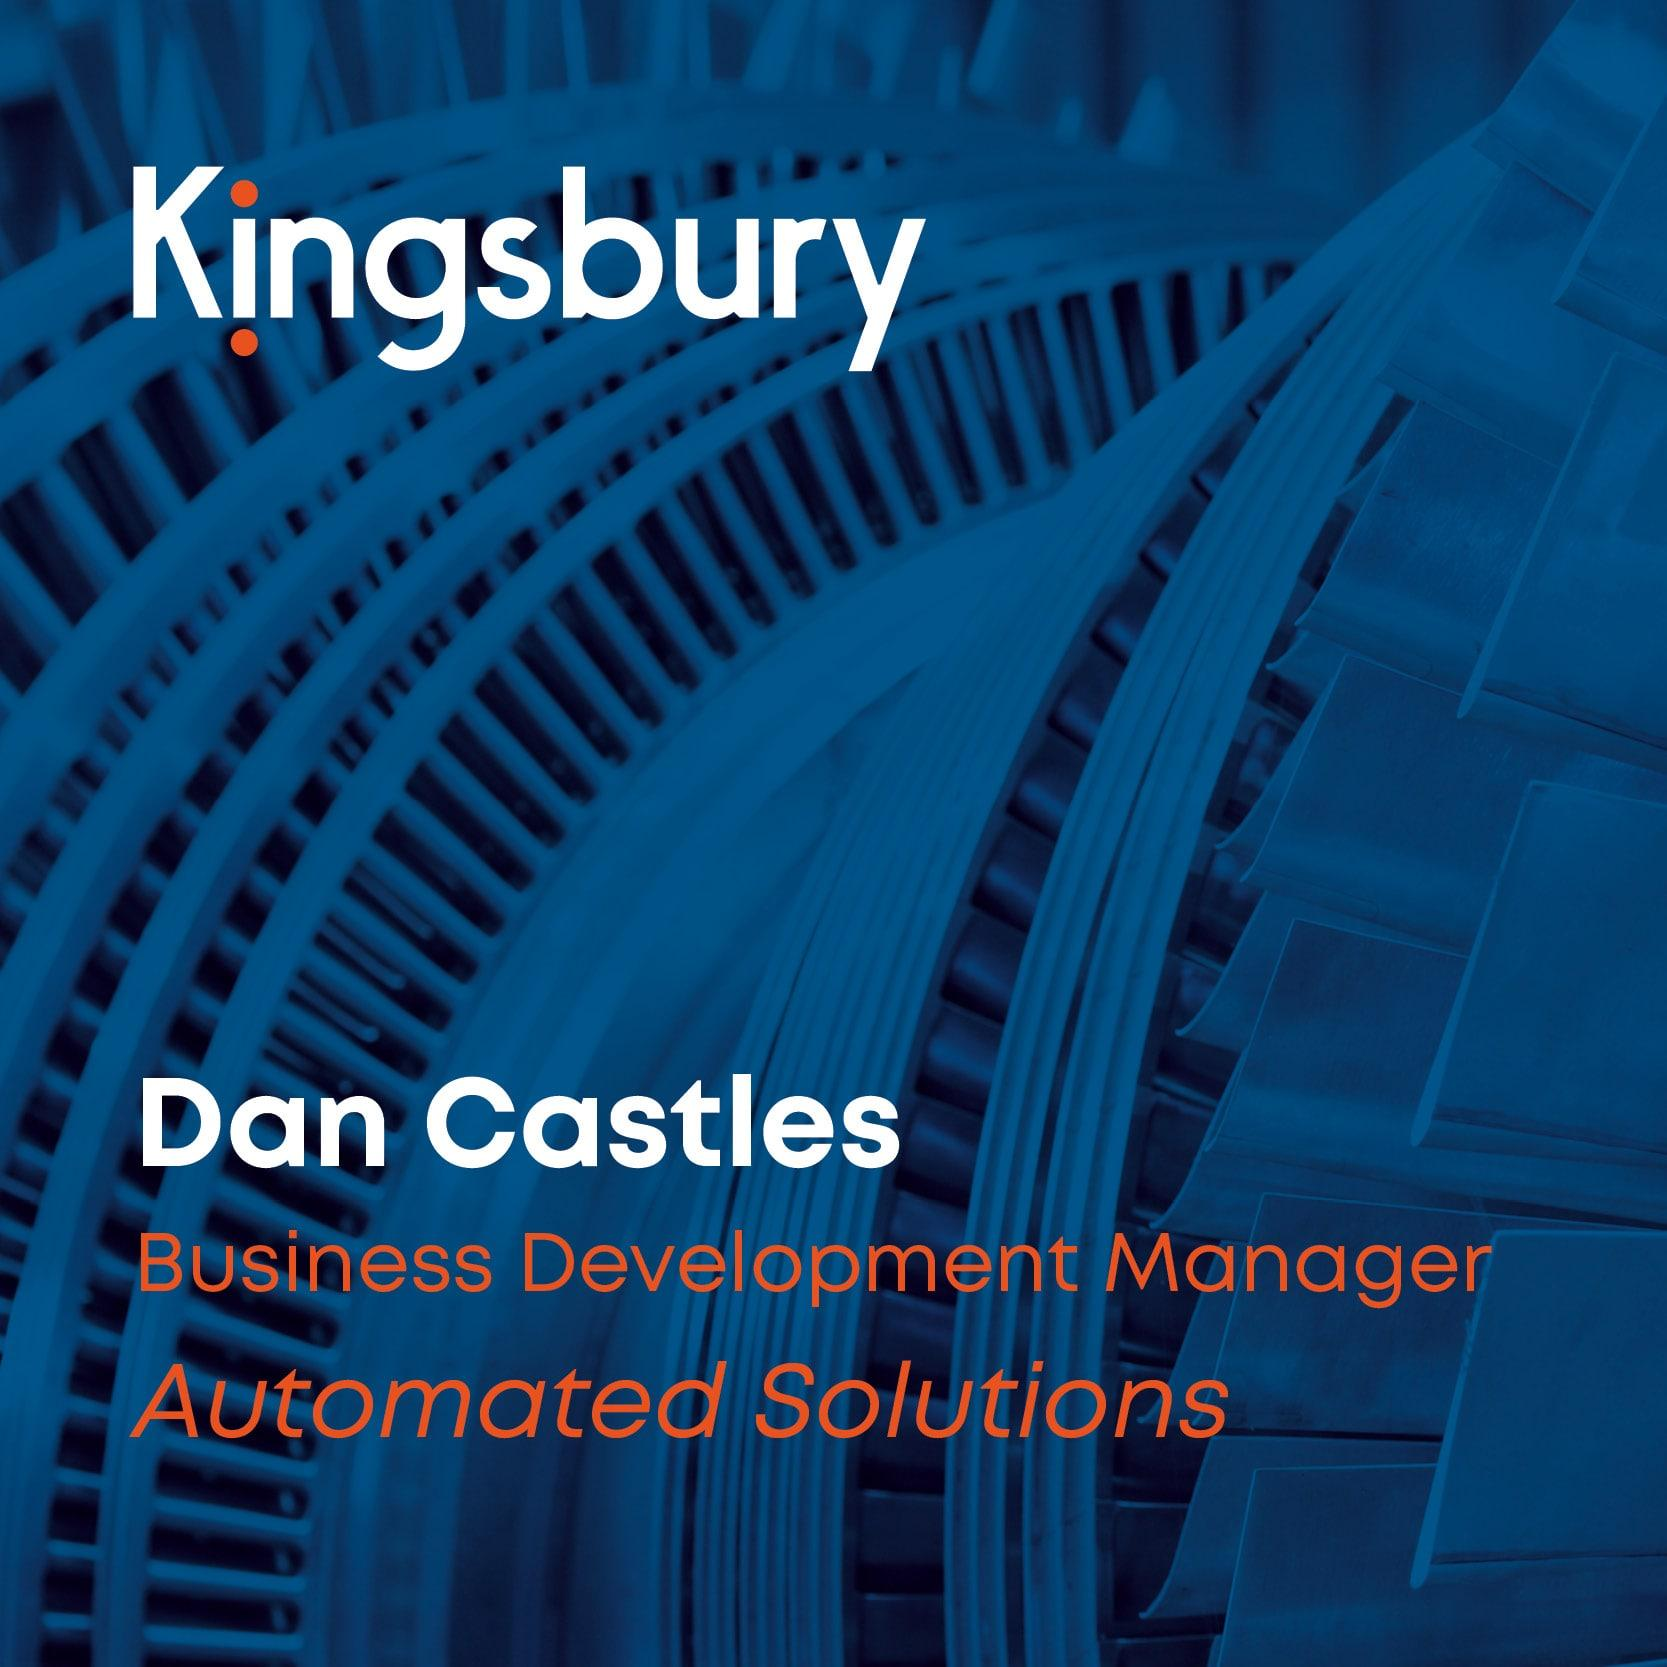 Dan Castles business development manager at Automated Solutions